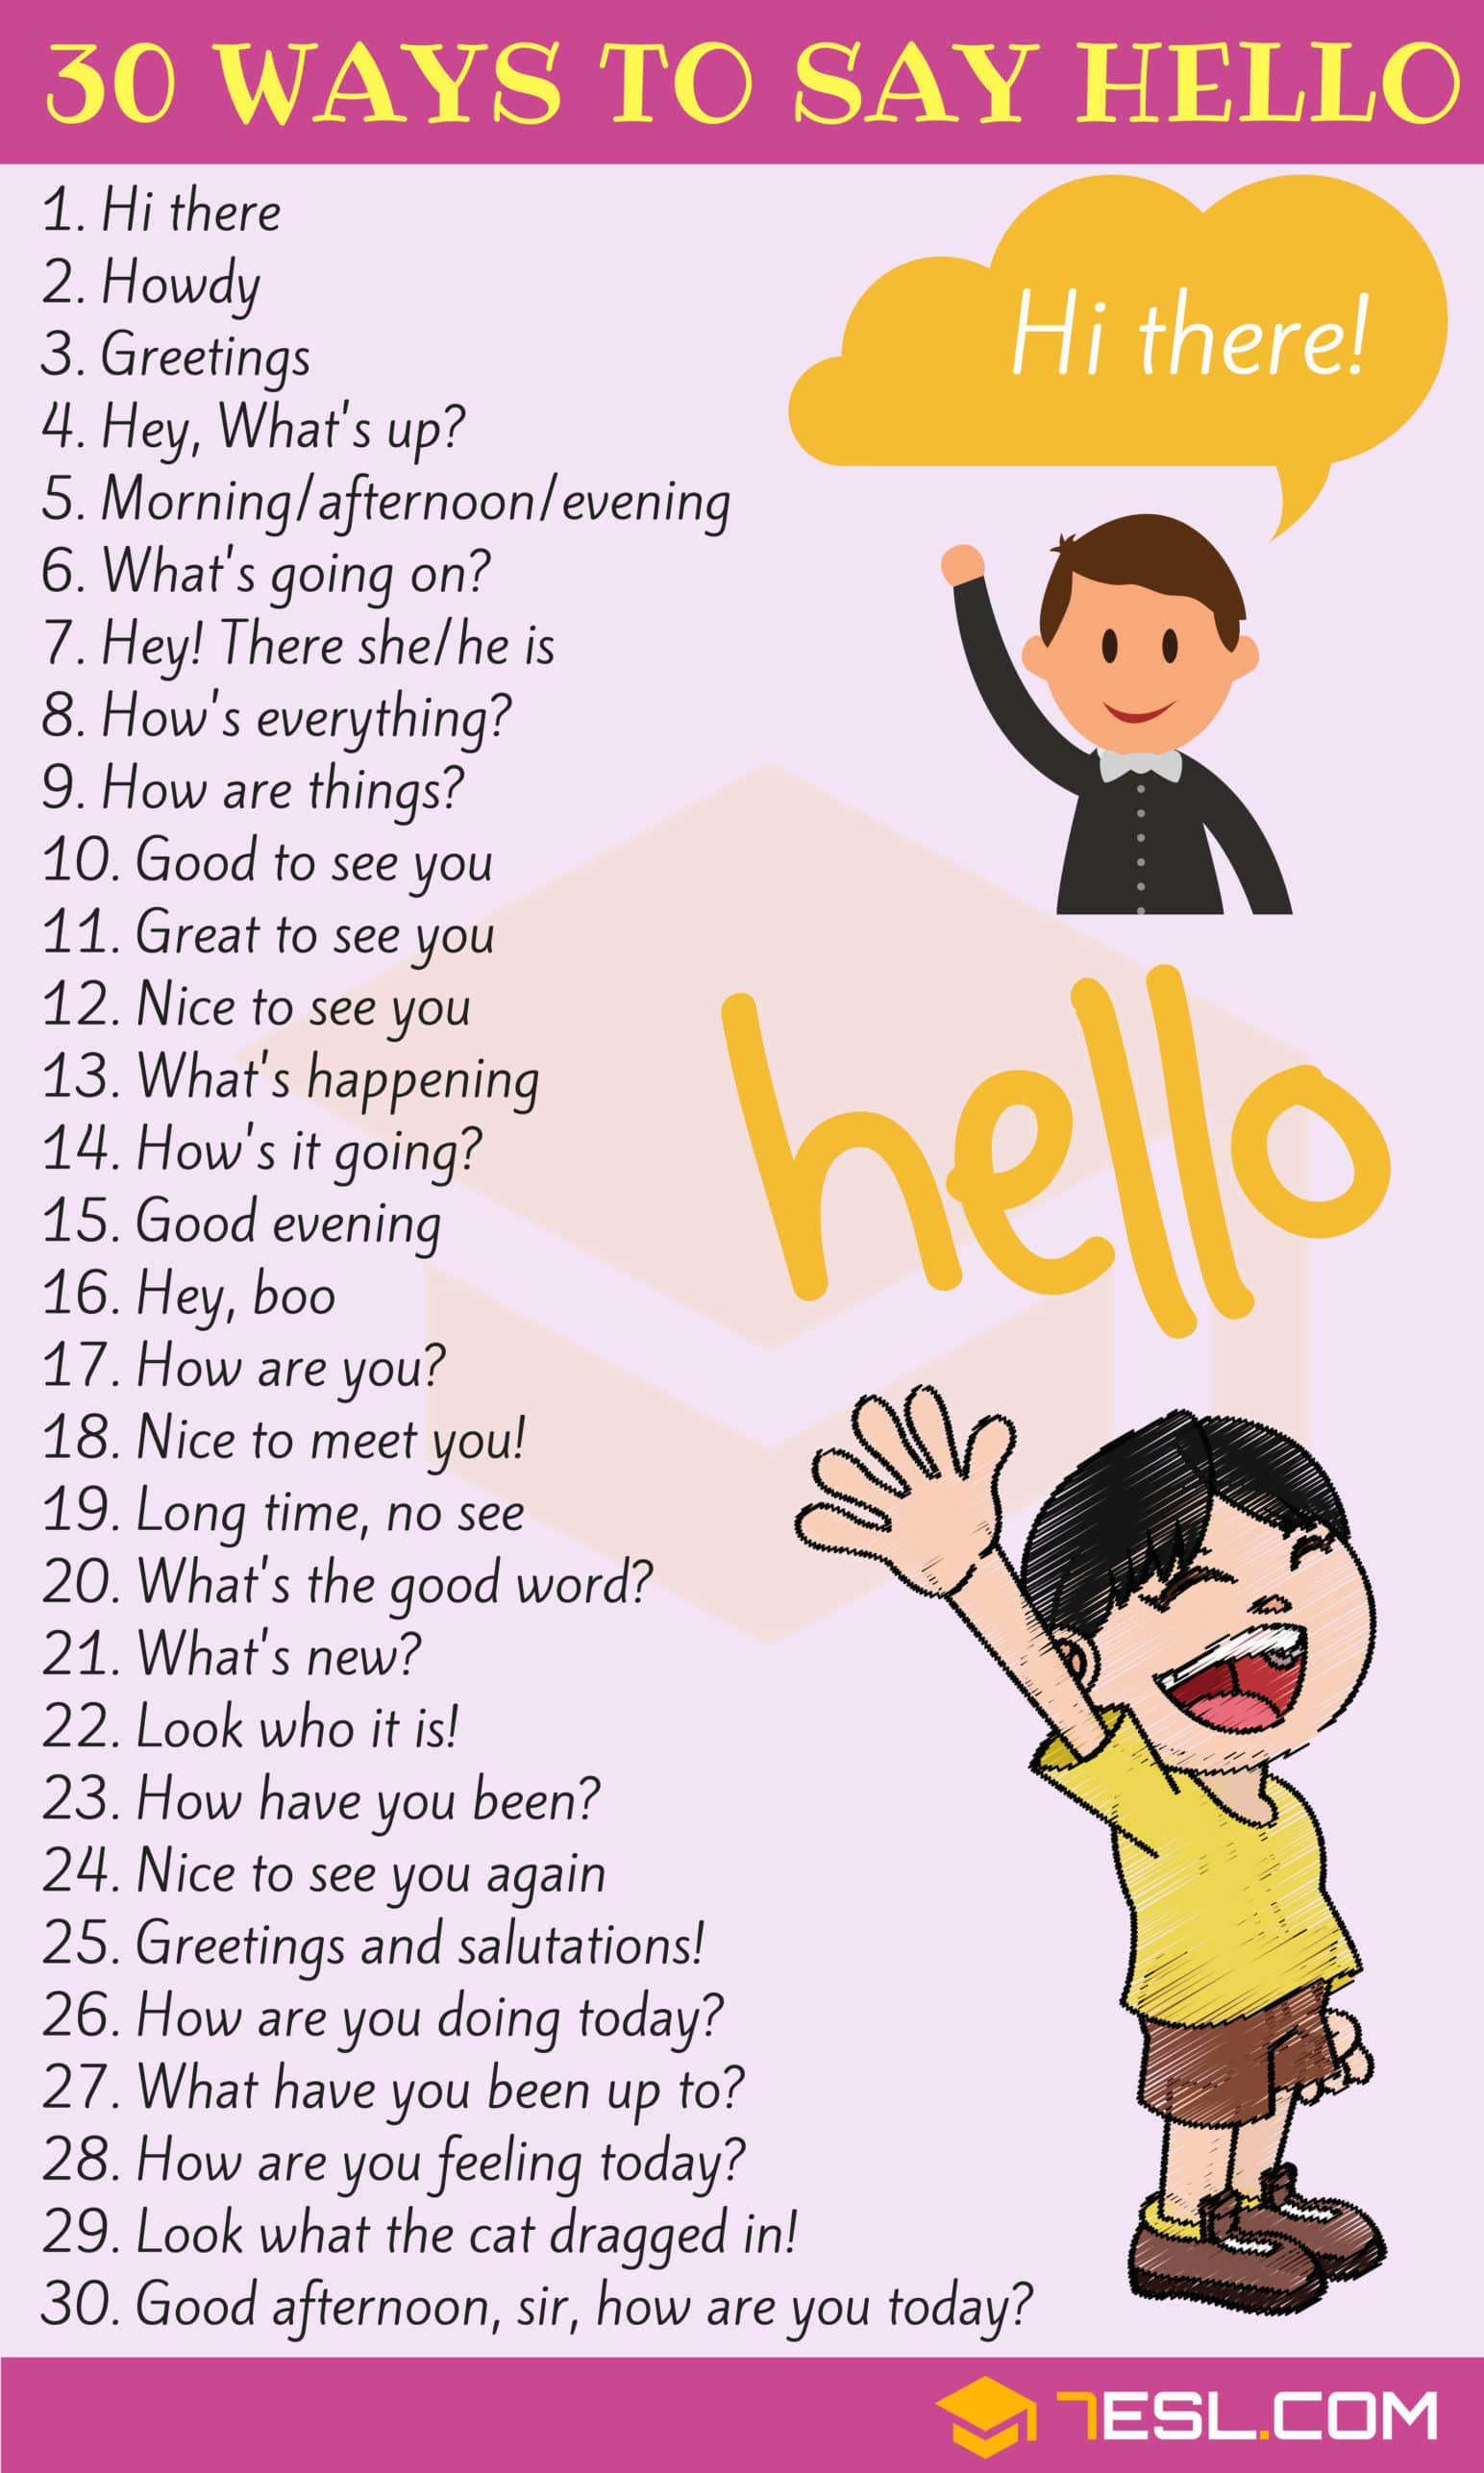 Ways to Say HELLO